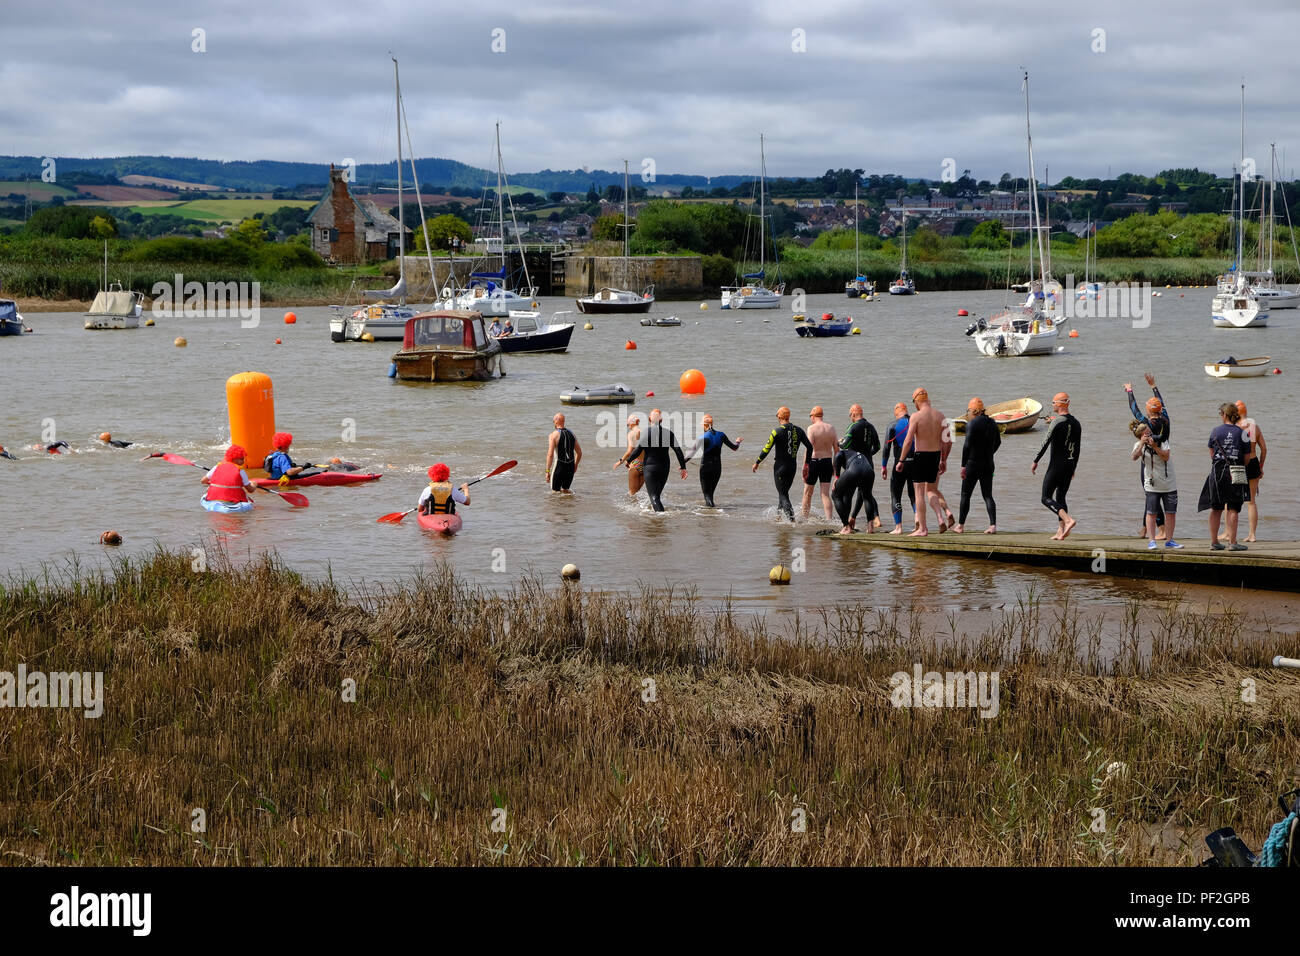 Topsham, Devon, UK. Swimmers take part in the annual Topsham to Turf Ferry swim along the River Exe in Topsham - Stock Image